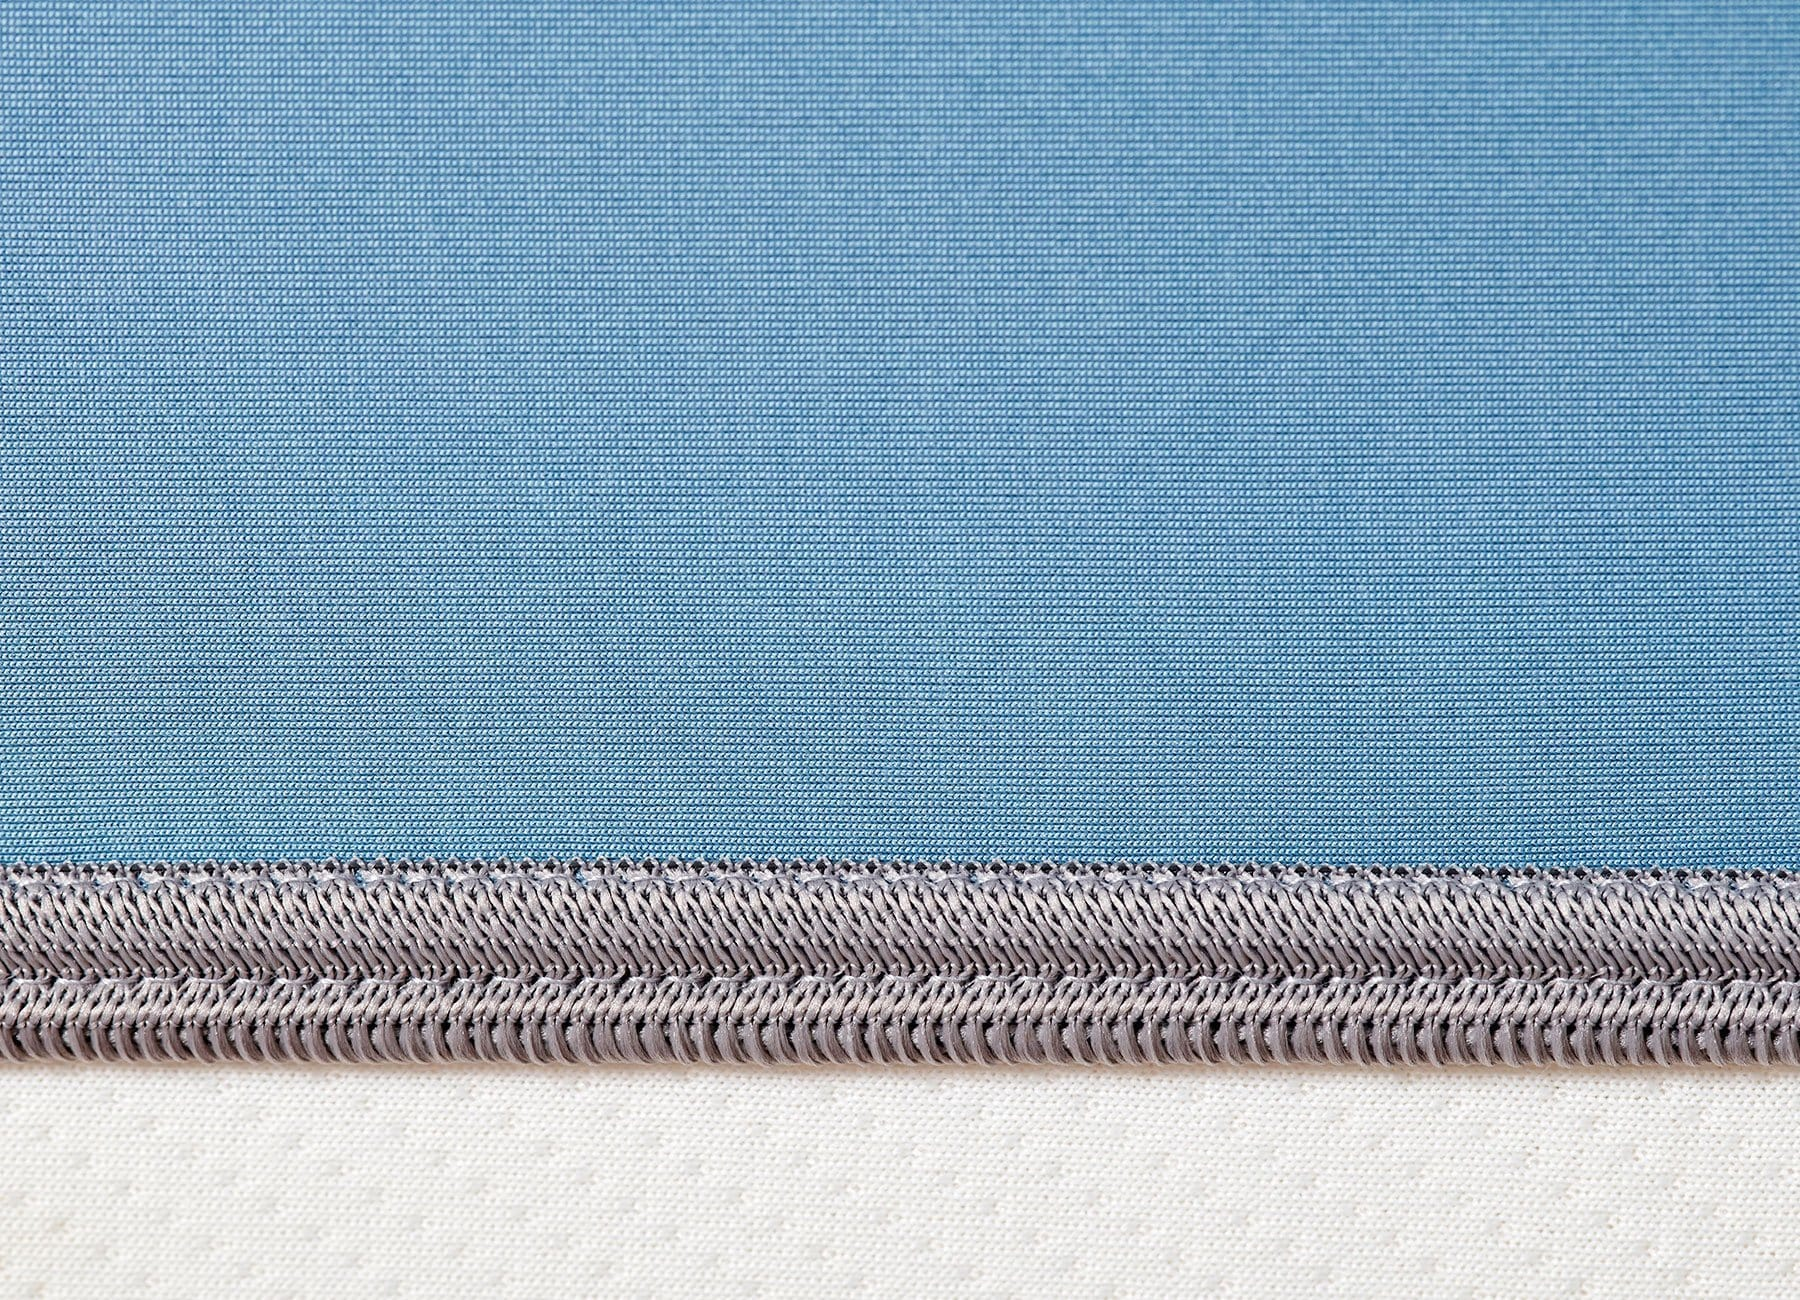 Original Performance Fitted Sheet on bed in Carolina Blue #choose-your-color_carolina-blue